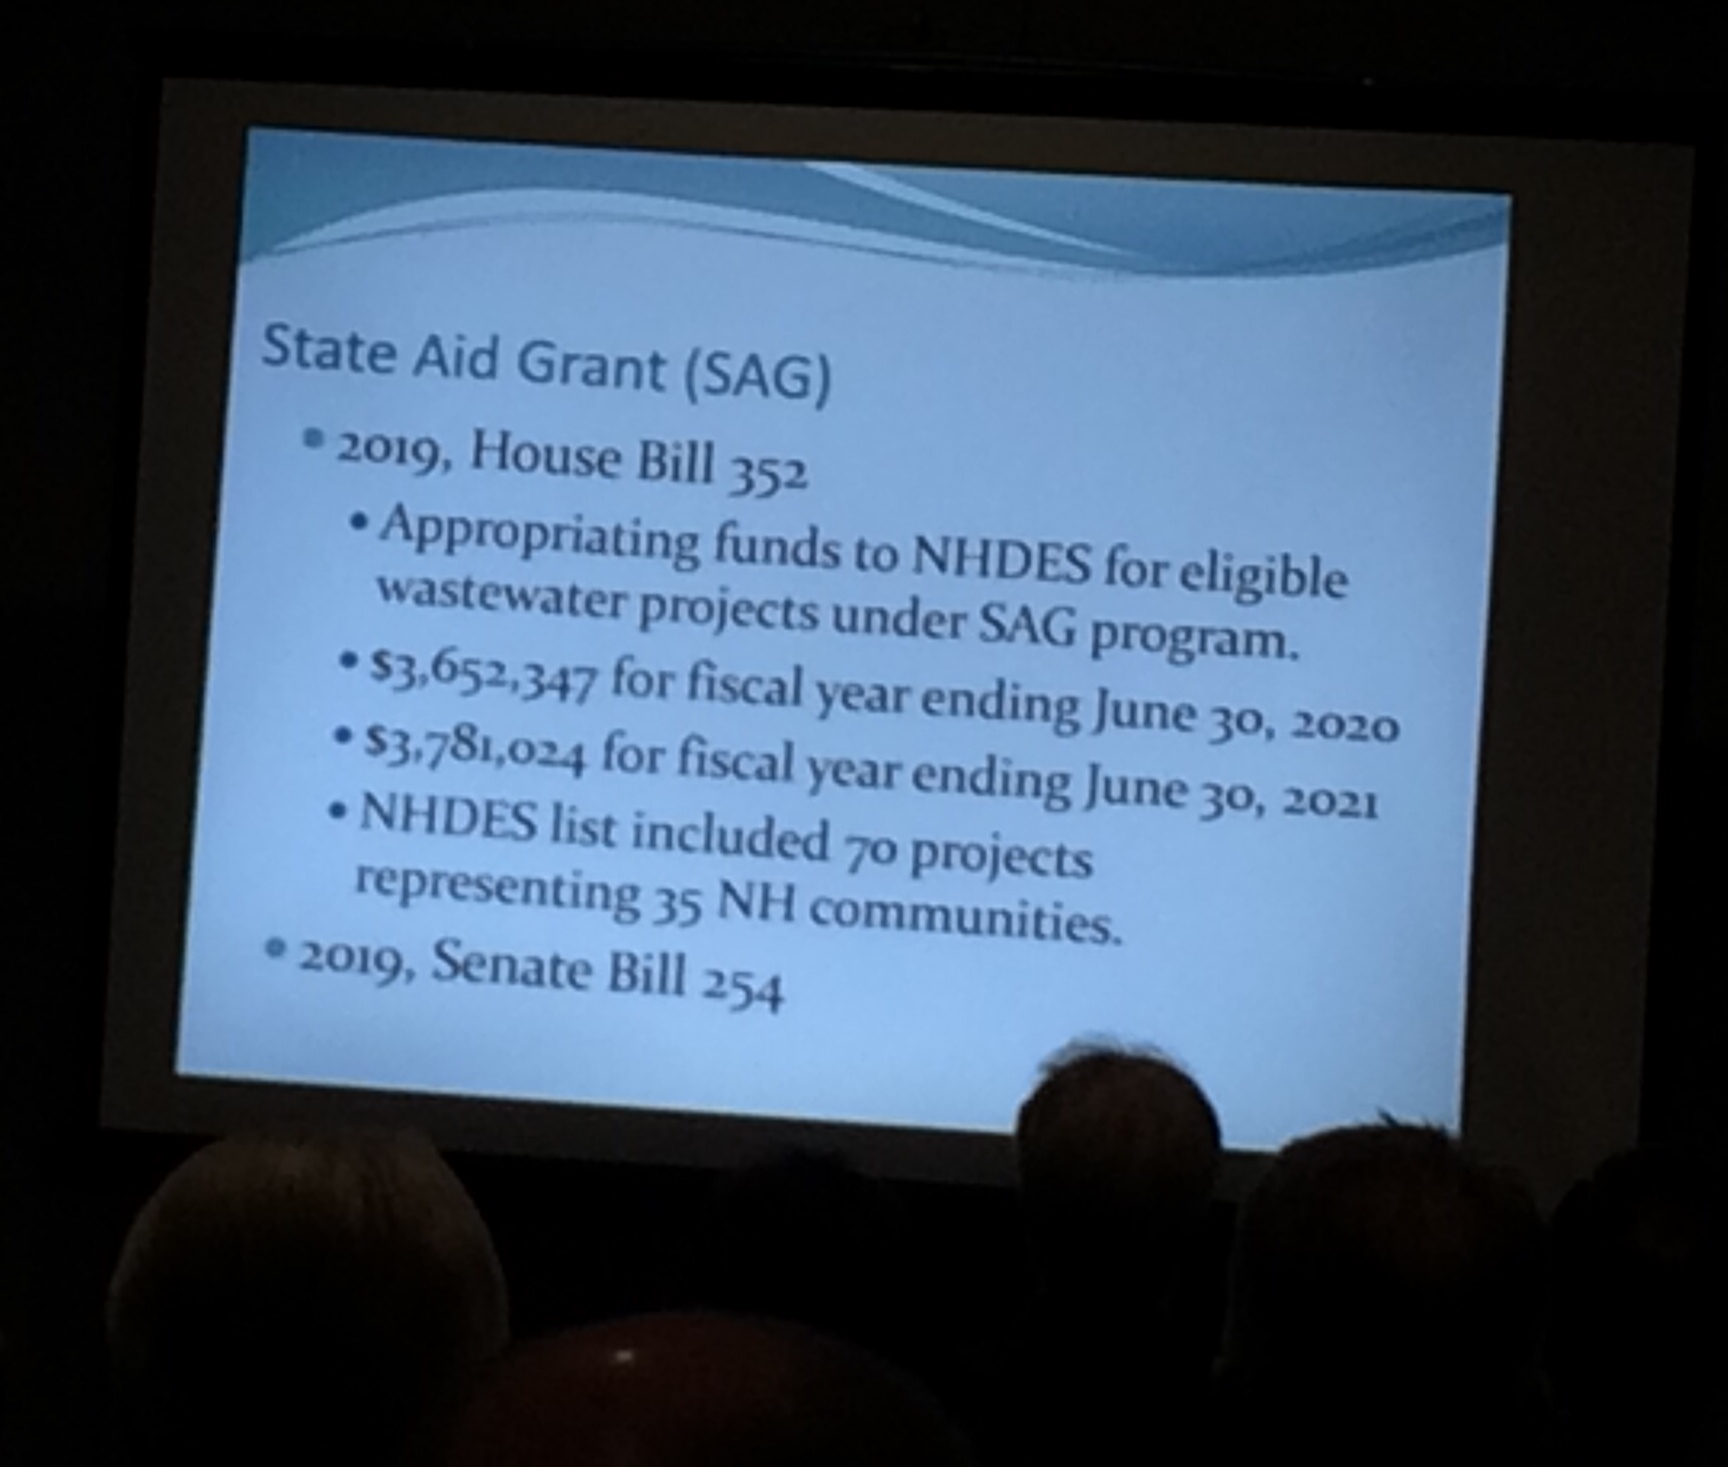 State Aid Grant (SAG) funding is a perennial discussion in the NH legislature, as reported at the NEWEA conference by Tracy Wood, NH DES.